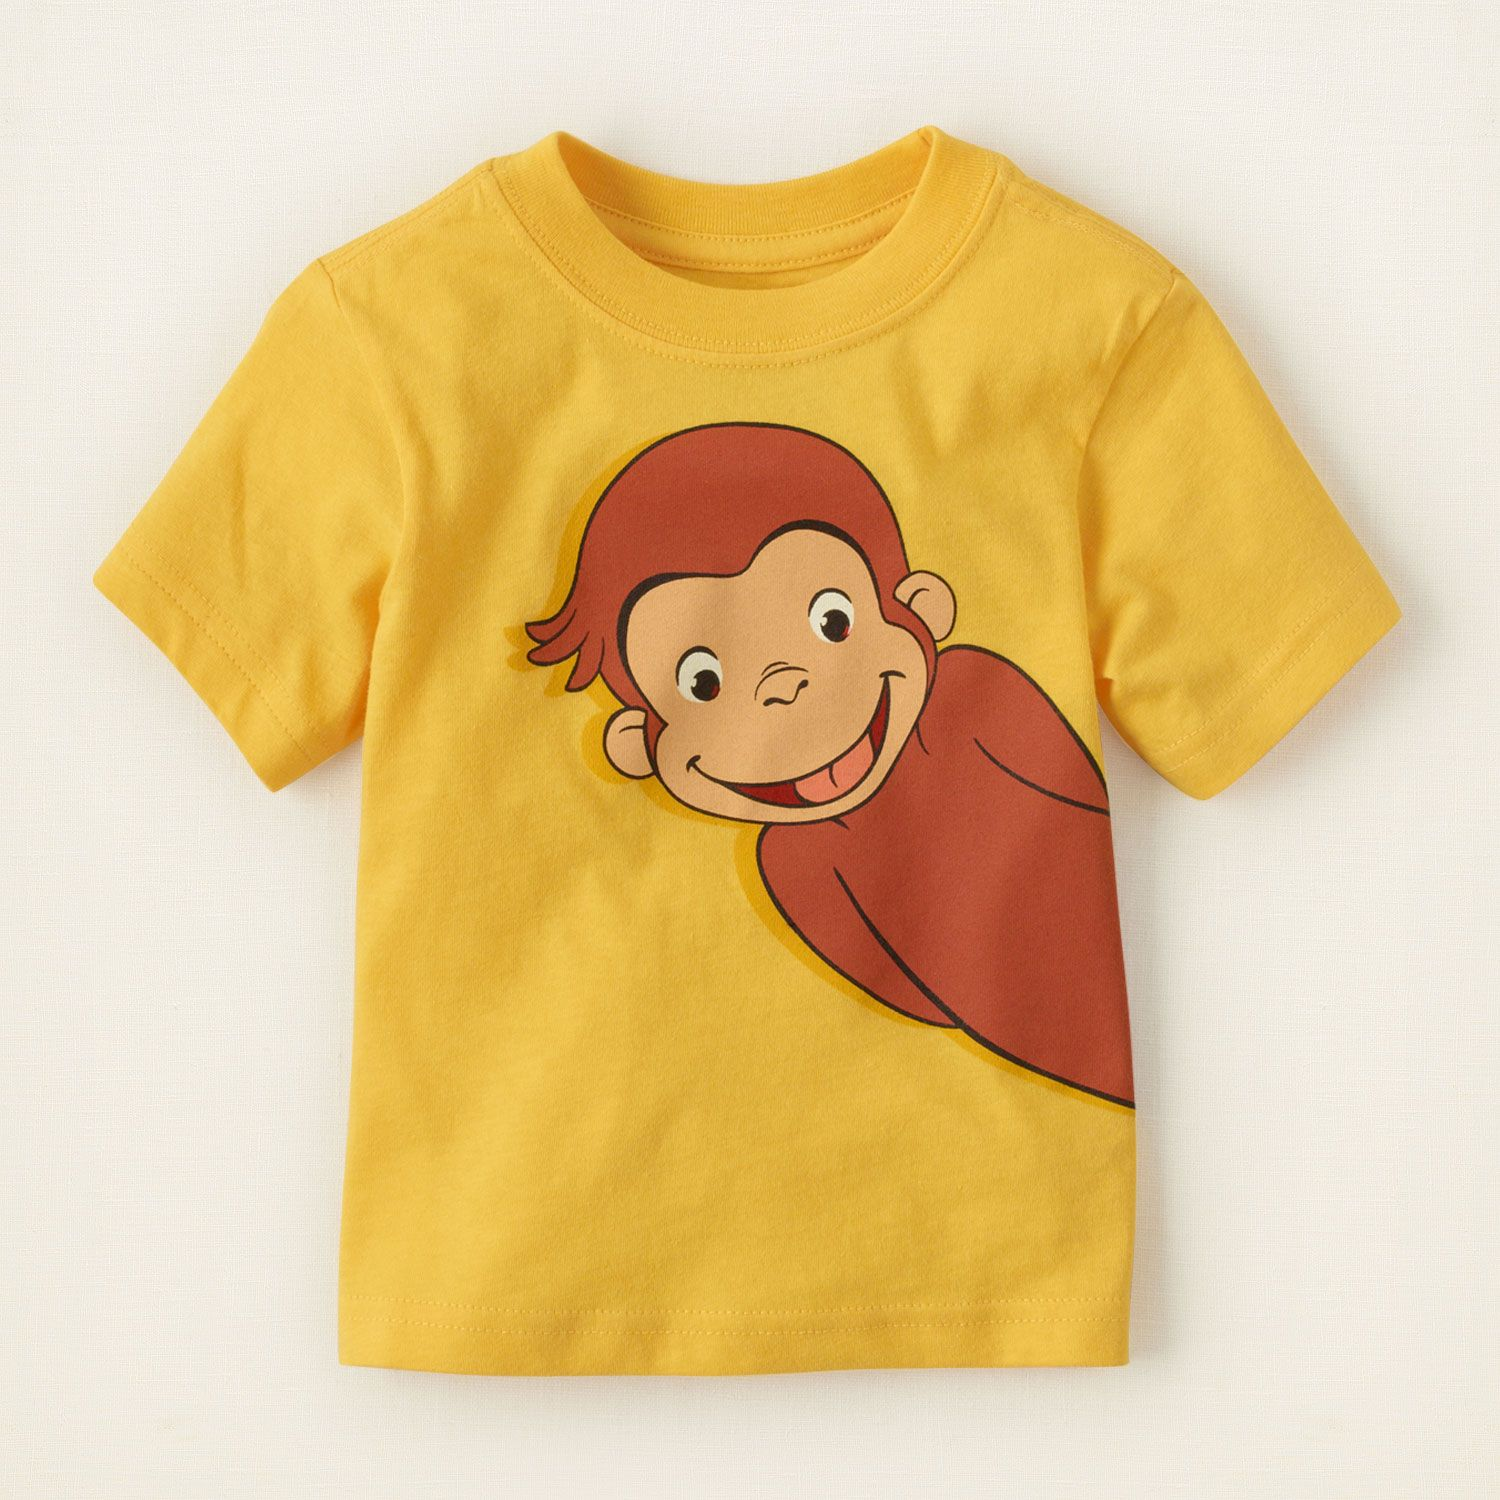 5cf457cf baby boy - graphic tees - Curious George graphic tee | Children's Clothing  | Kids Clothes | The Children's Place